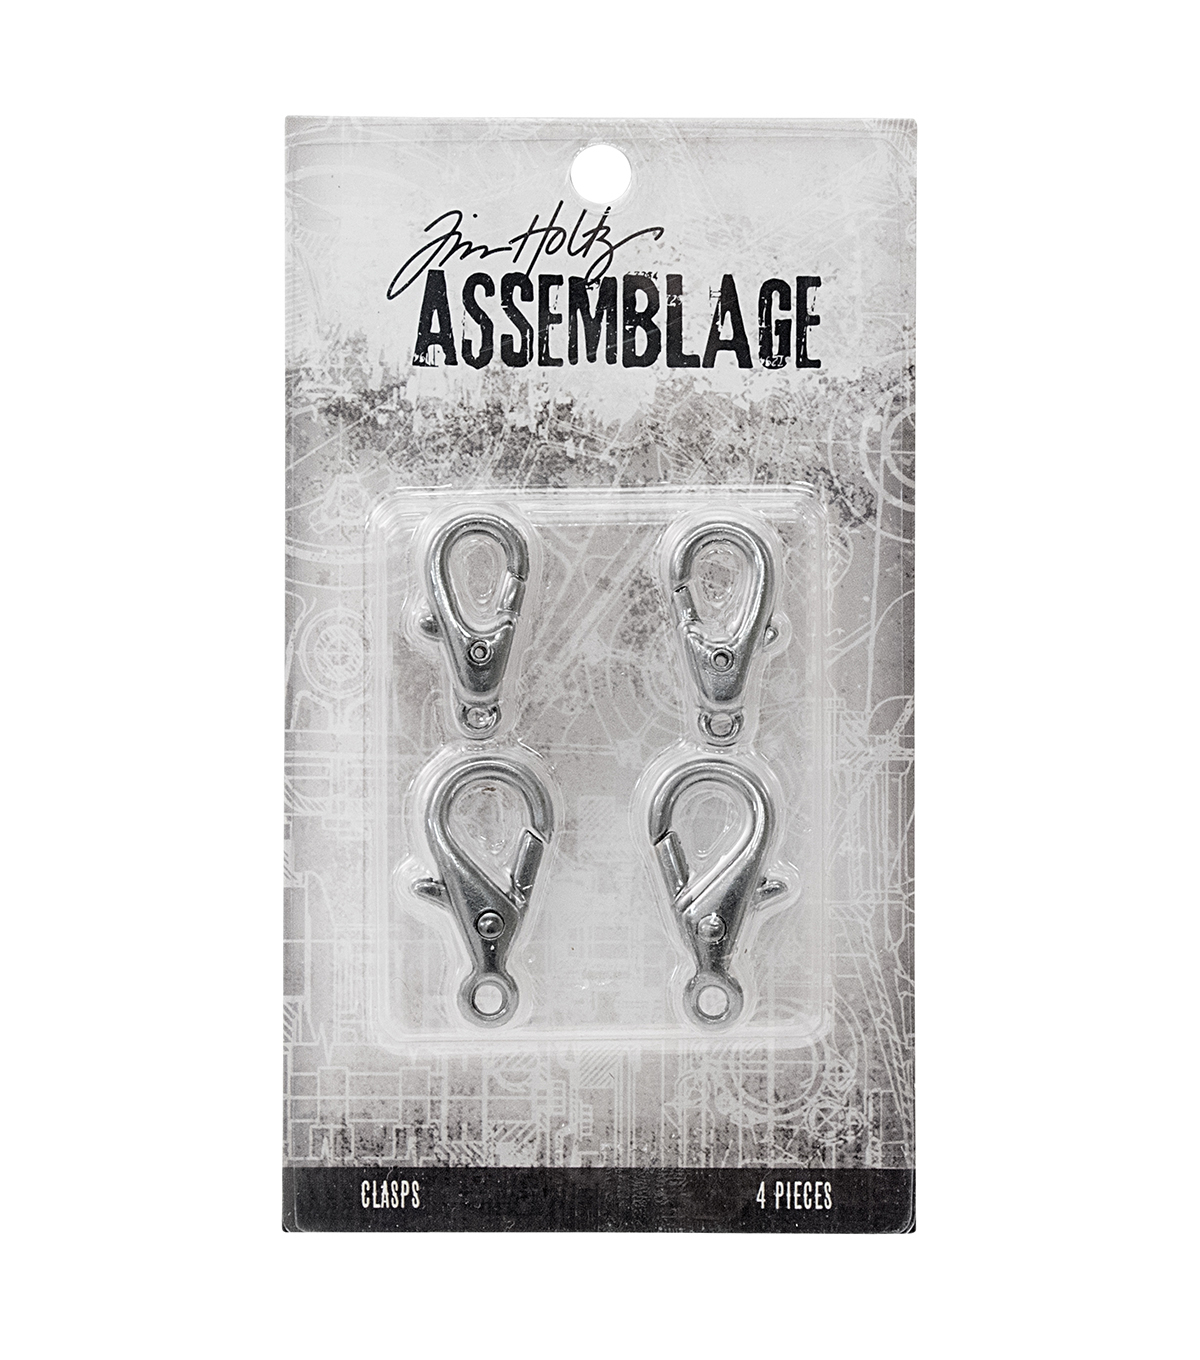 Tim Holtz Assemblage Pack of 4 Large Silver Lobster Claws Clasps